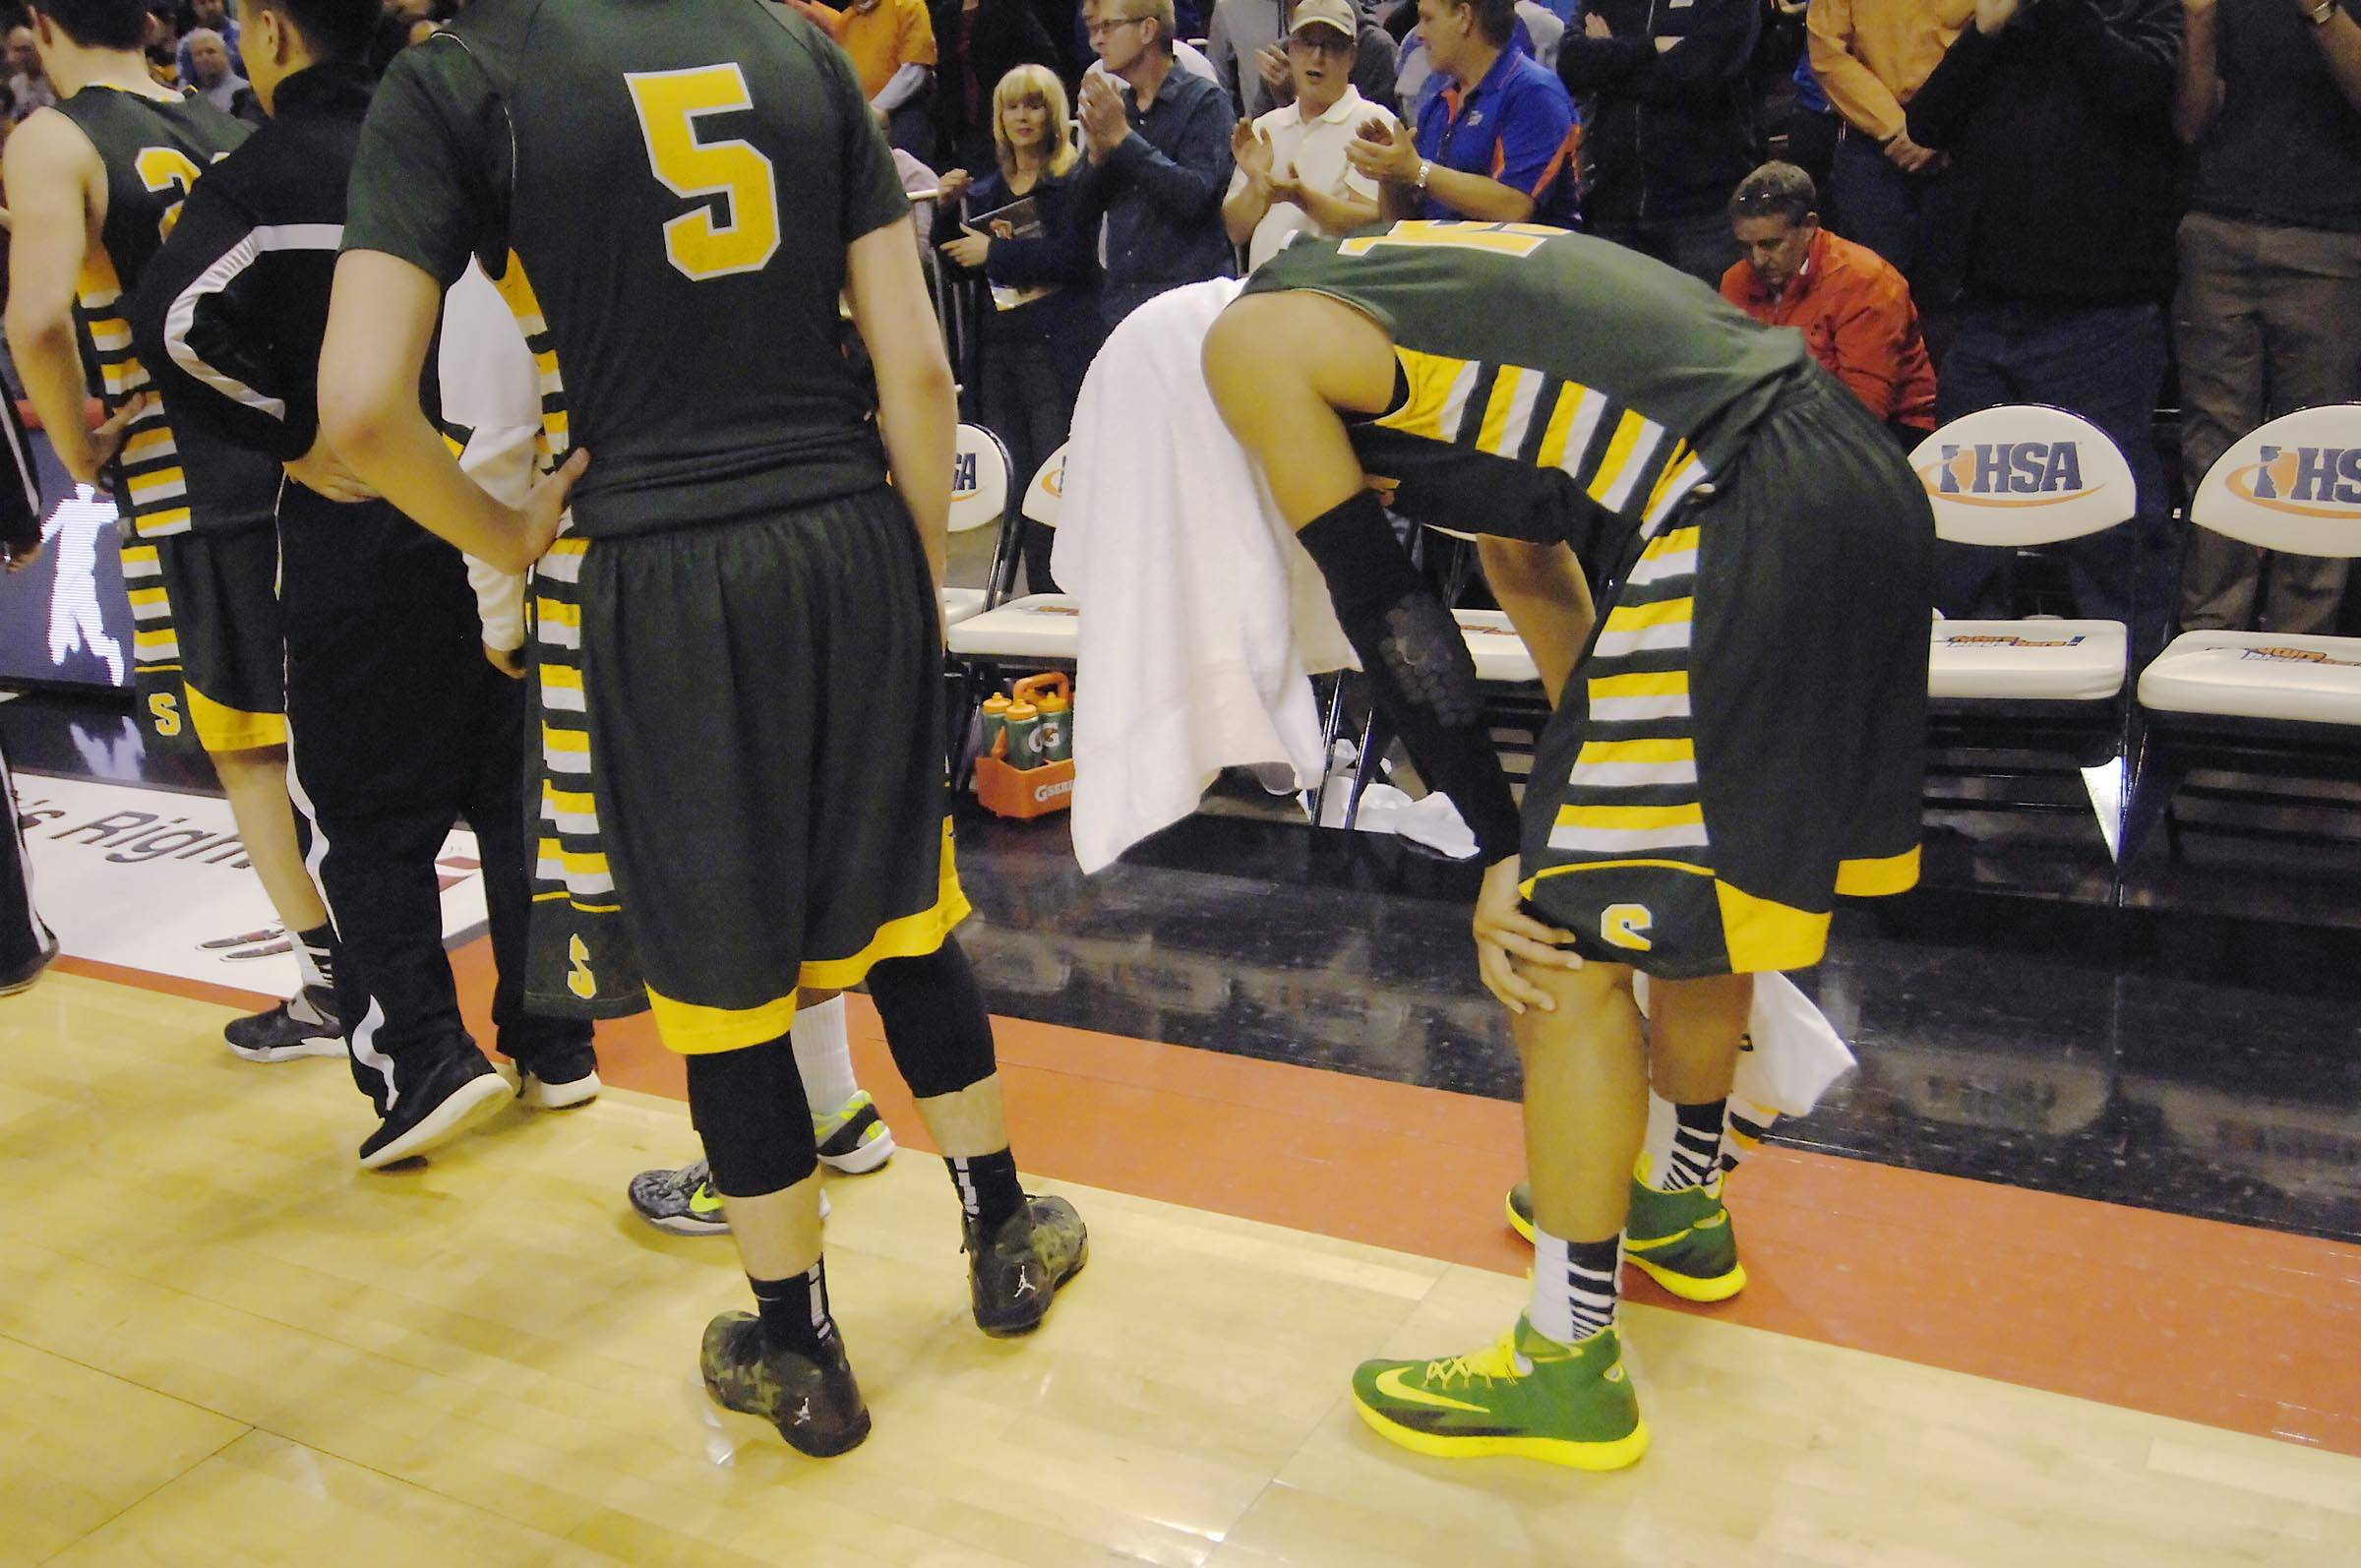 Stevenson's Jalen Brunson covers his head with a towel after the Patriots lost to Whitney Young in the Class 4A state semifinals at Carver Arena in Peoria Friday.